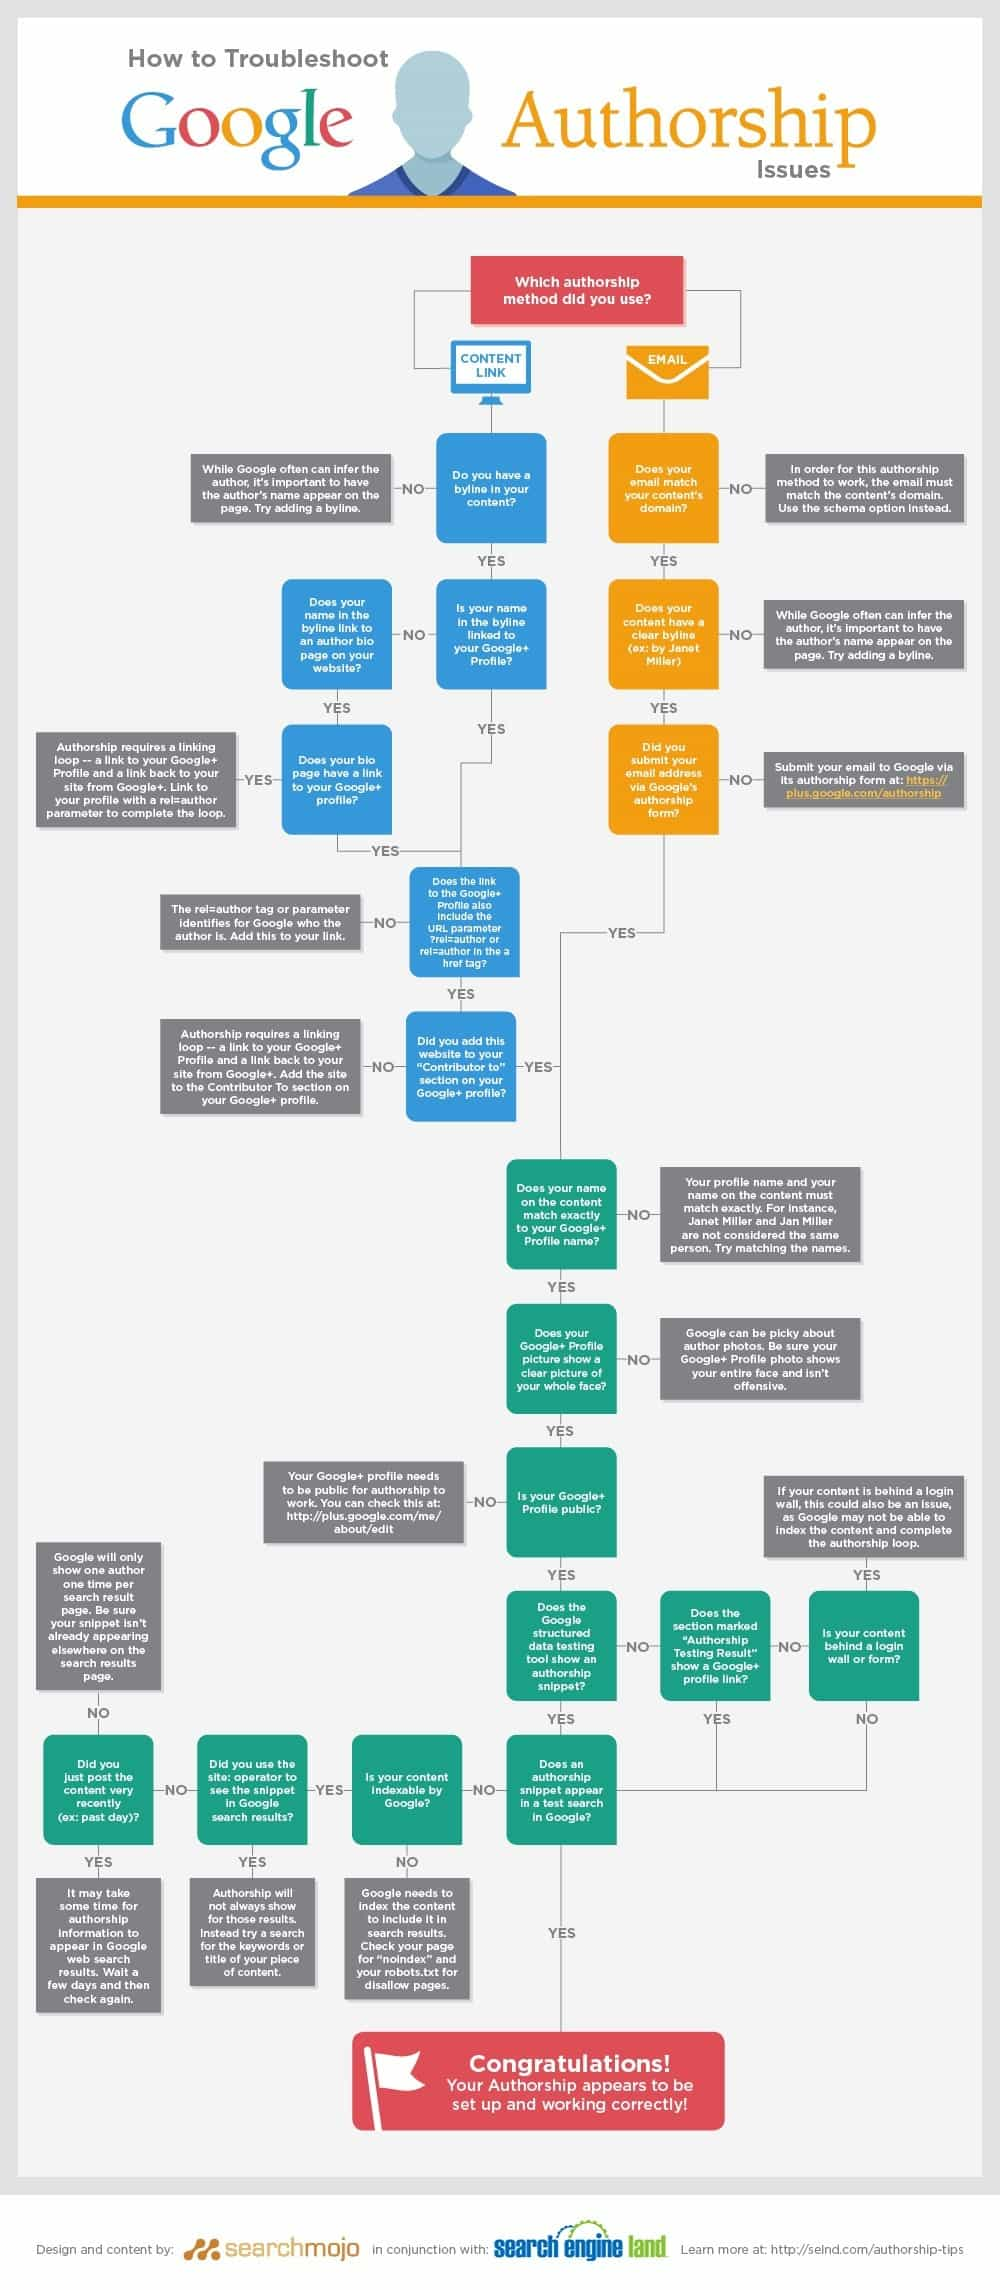 How to troubleshoot Google Authorship - a step by step guide